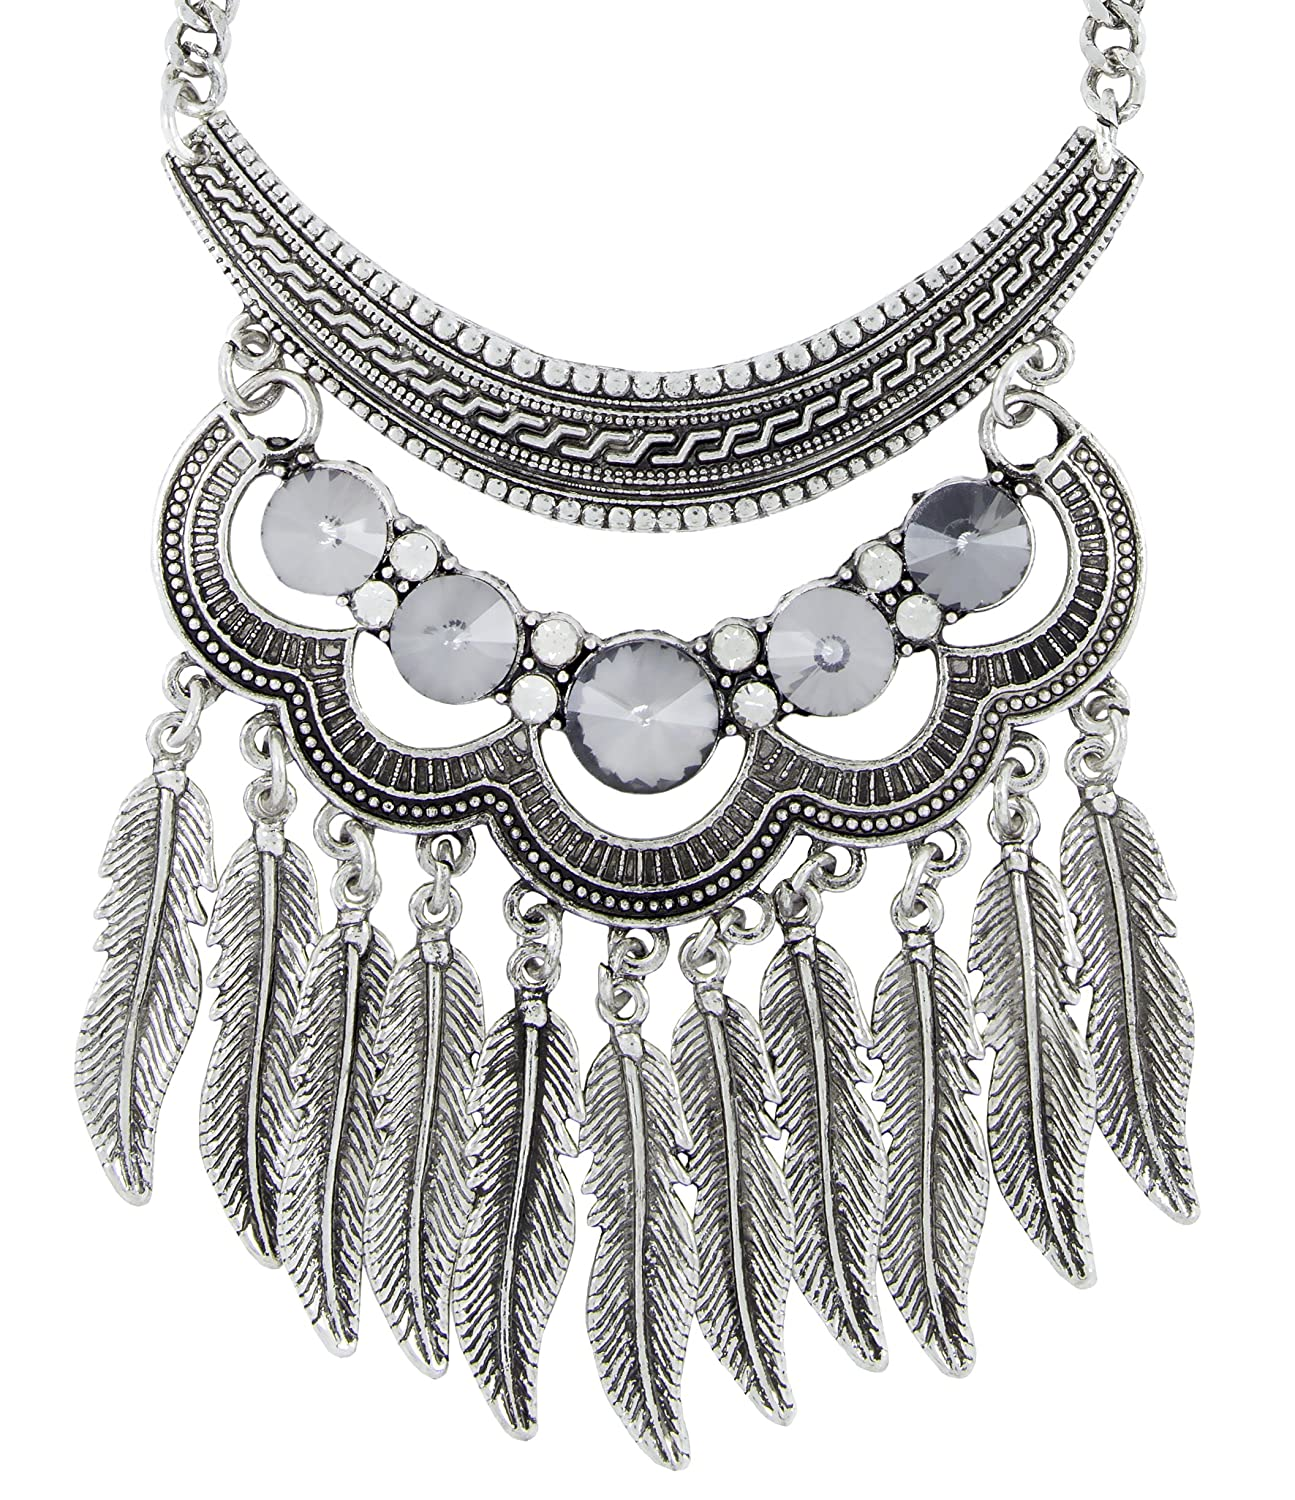 ZIVOM/® Tribal Bohemian Afghani Statement Turquoise Antique Oxidised Silver Long Necklace Chain Girls Women